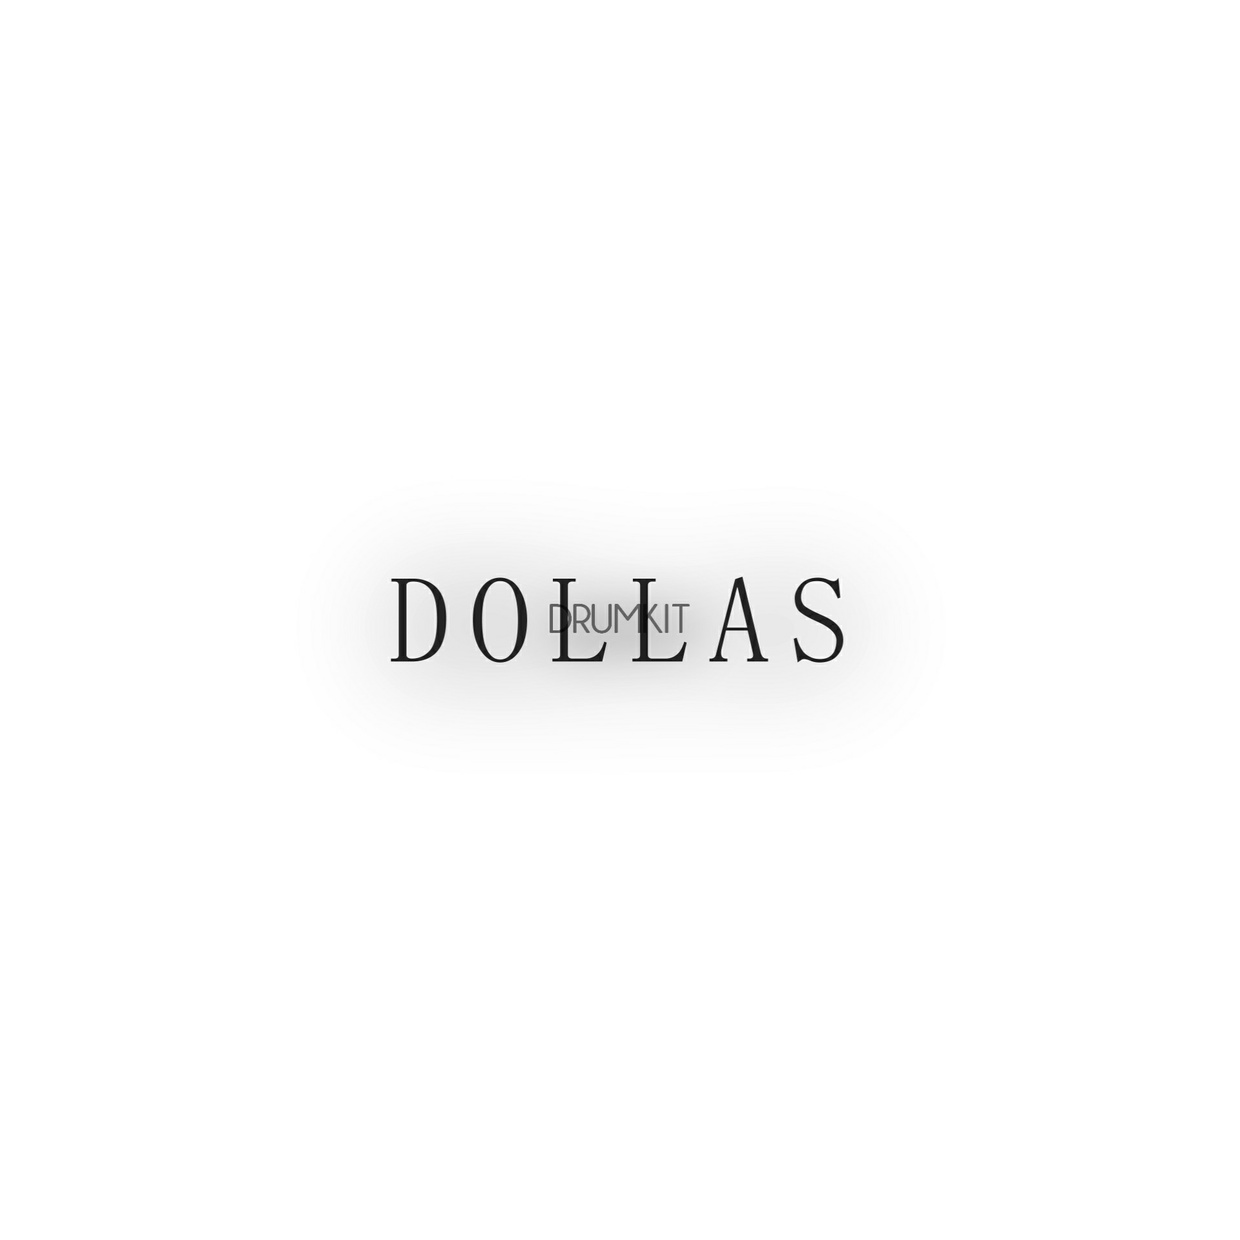 DOLLAS DRUMKIT